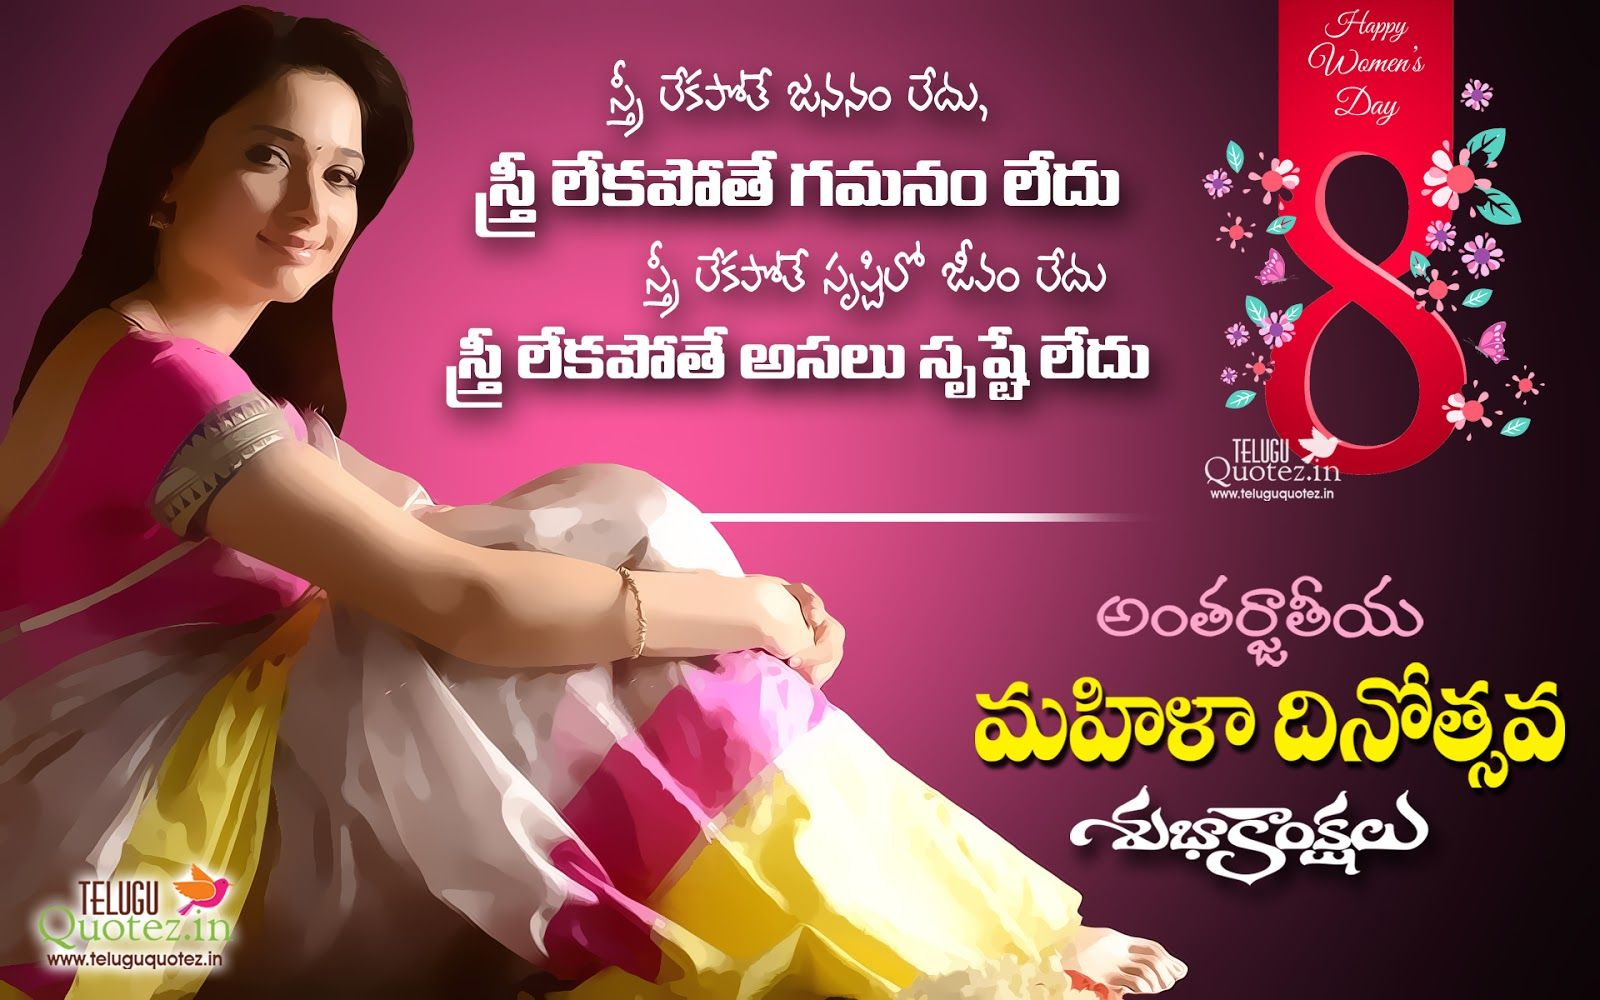 Women's DayWomen's Day Quotations and Greetings in telugu ...